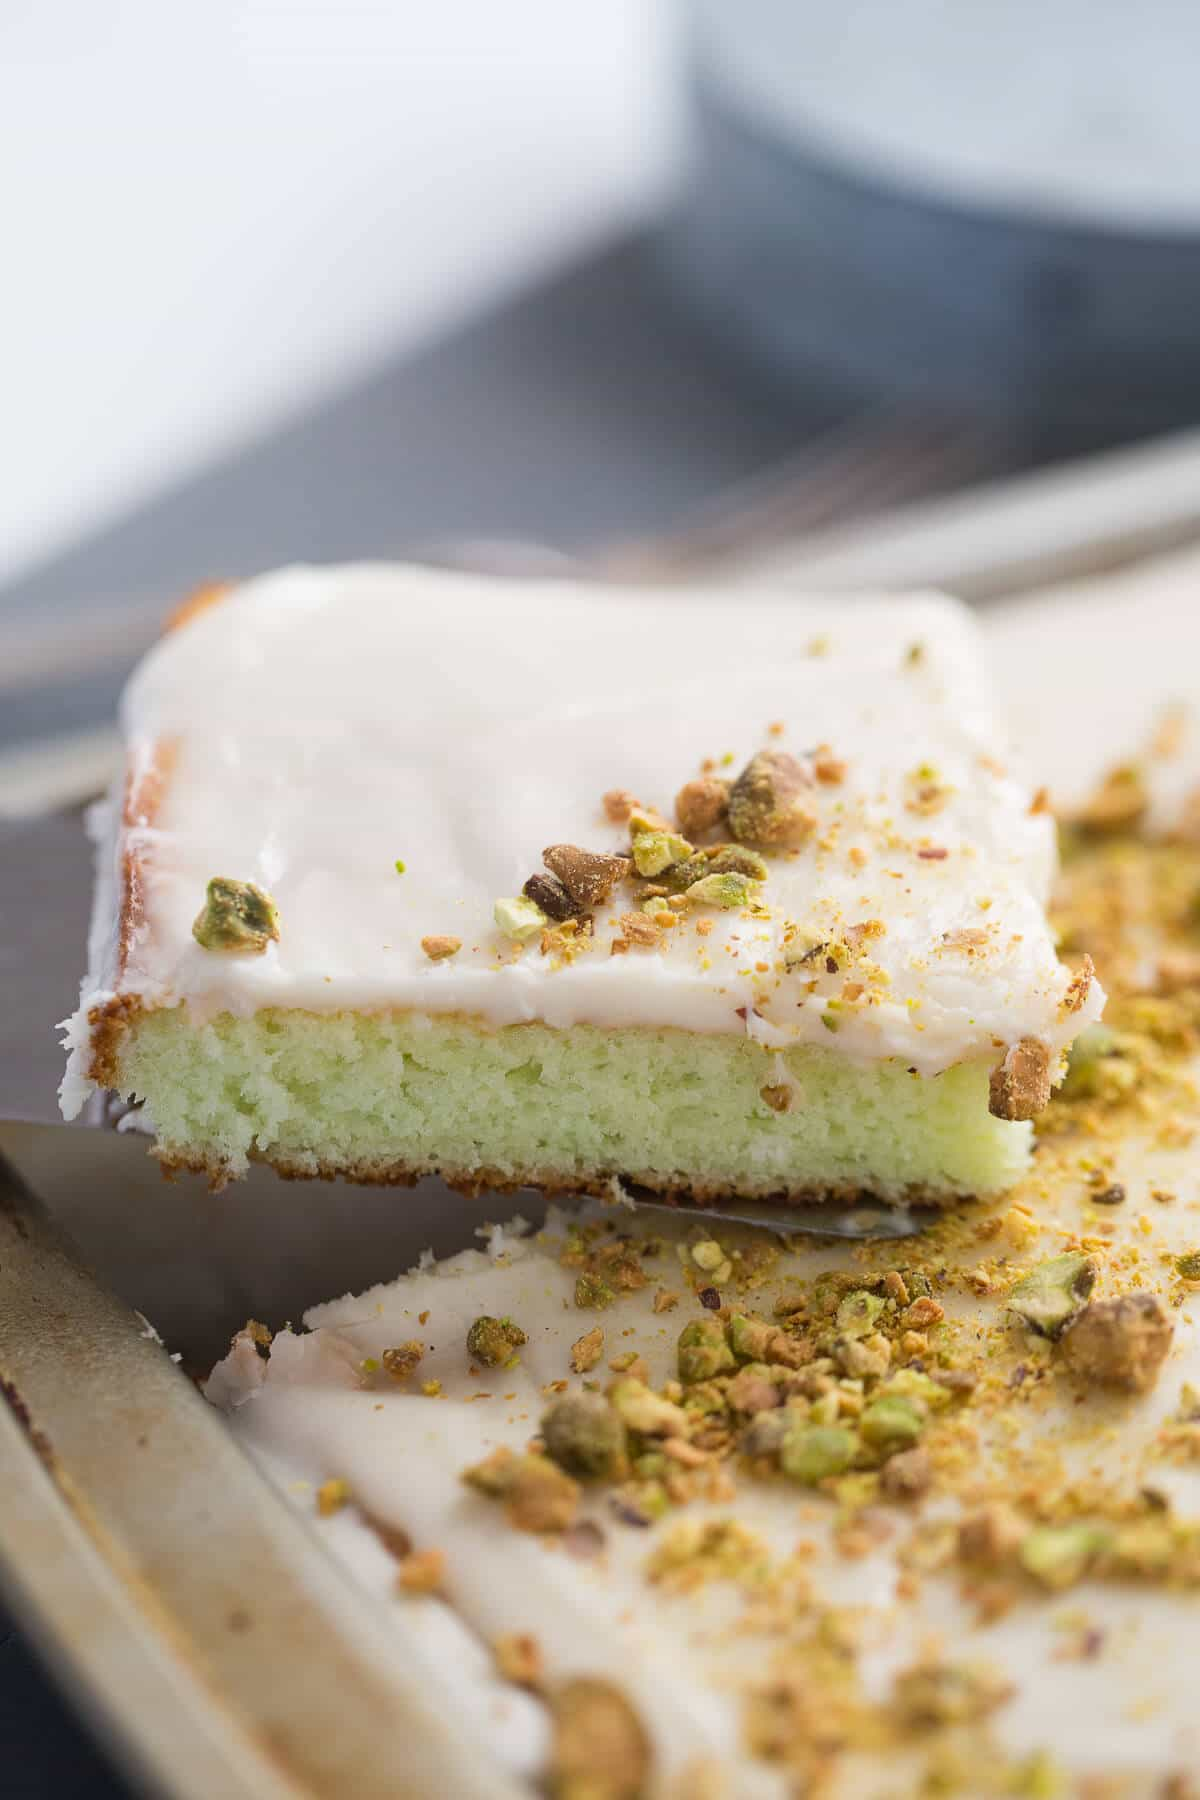 You are going to love this pistachio pudding cake. The simple vanilla frosting is the perfect compliment!